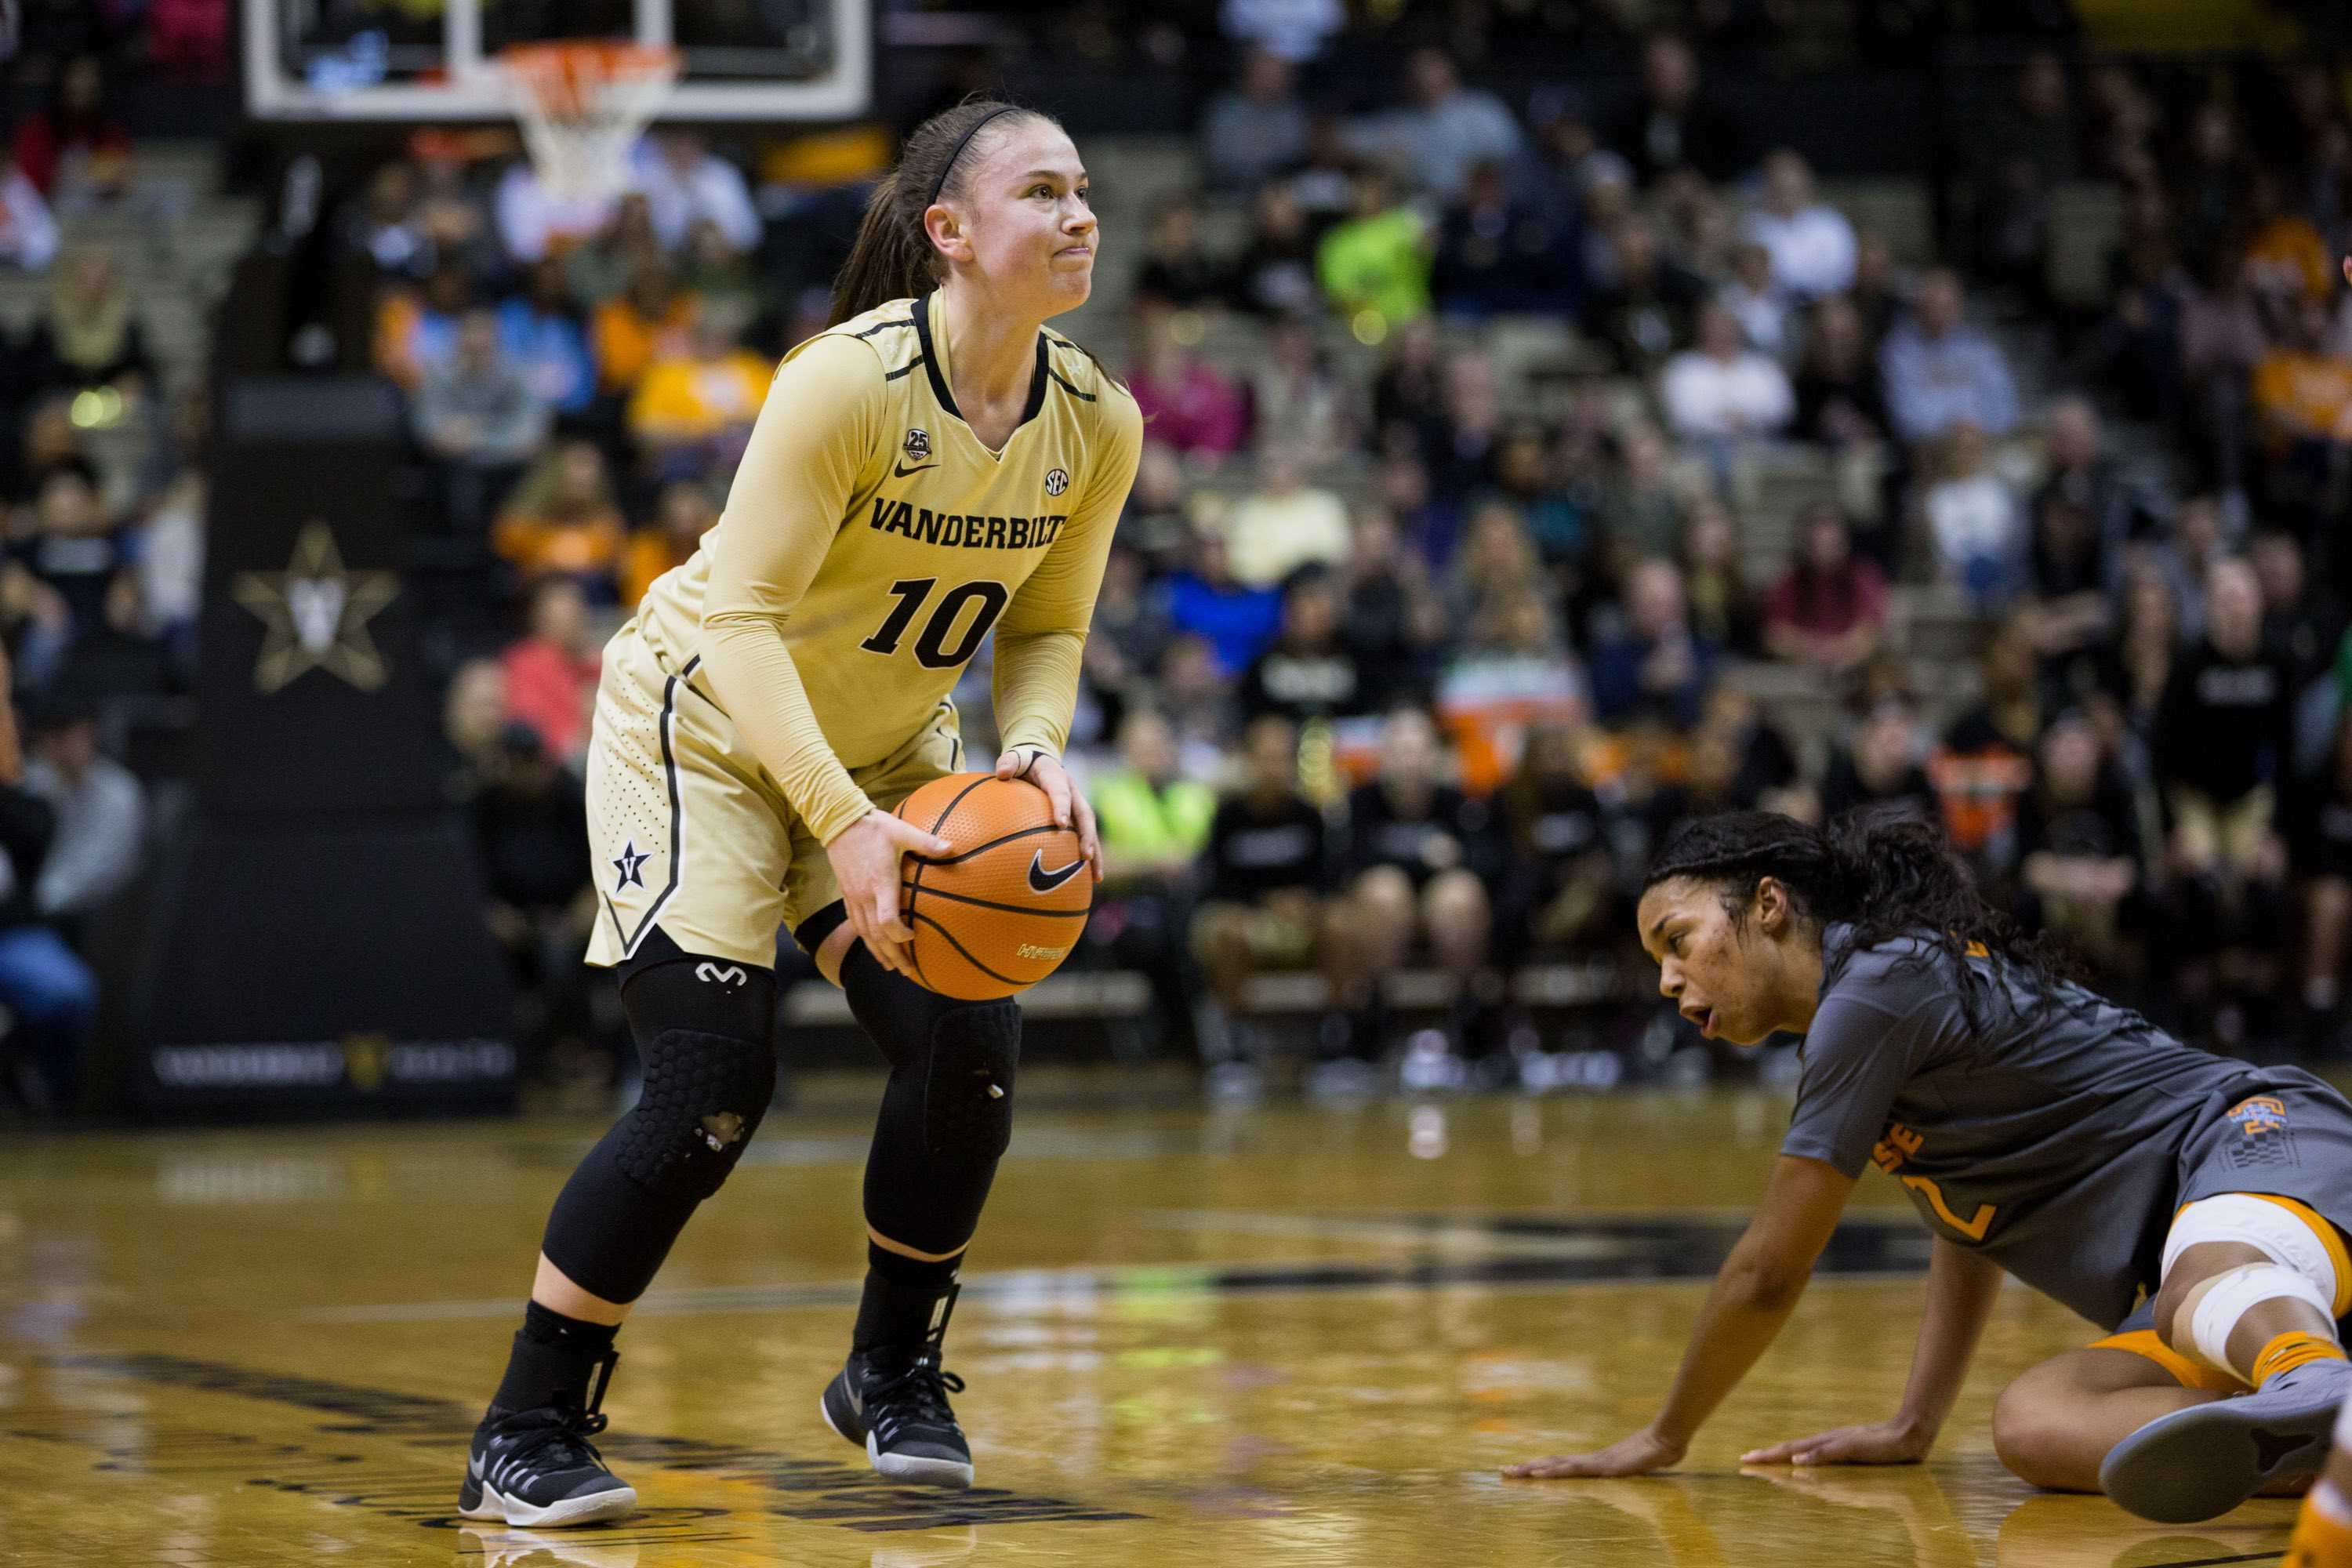 Change is the name of the game for Vanderbilt Women's Basketball